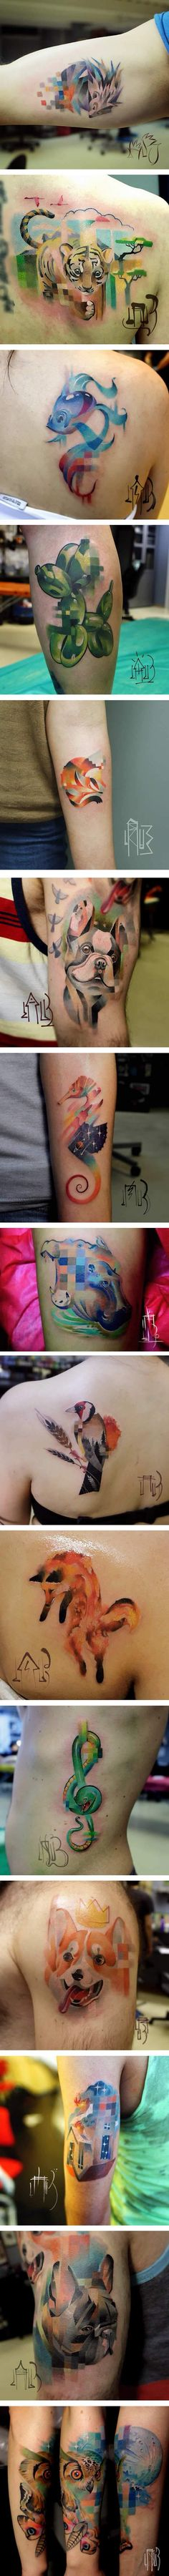 best tattooed up images on pinterest tattoo ideas tattoo art